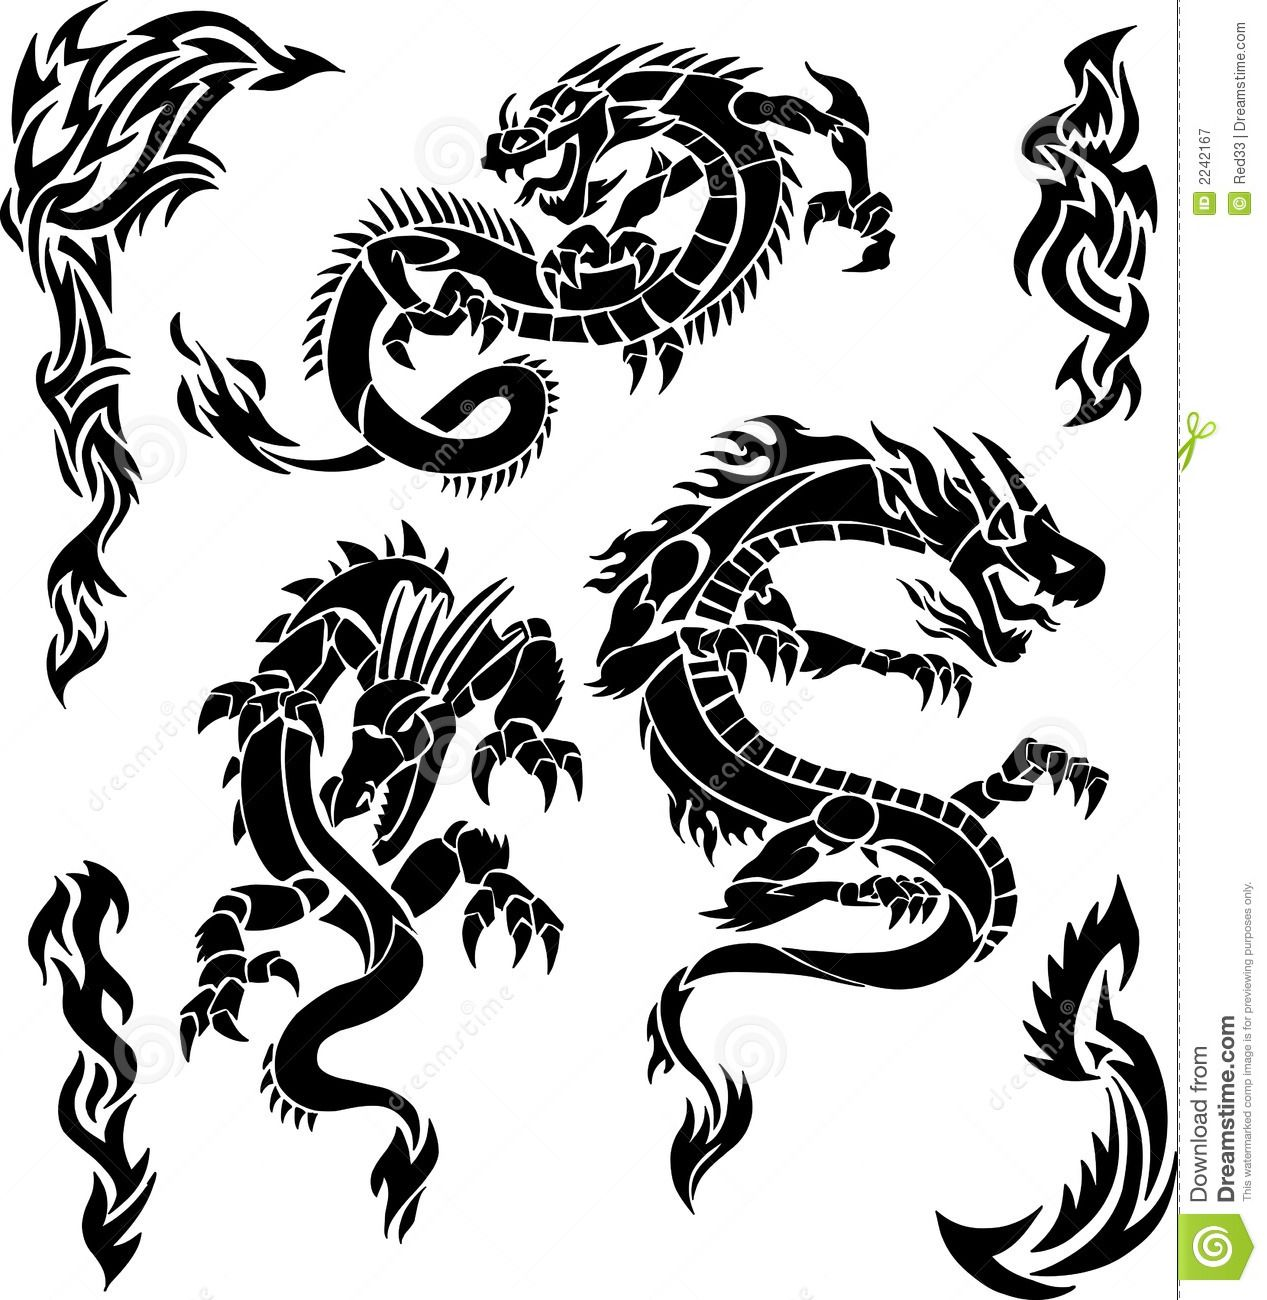 Vector Dragon Icons - Download From Over 29 Million High Quality ...